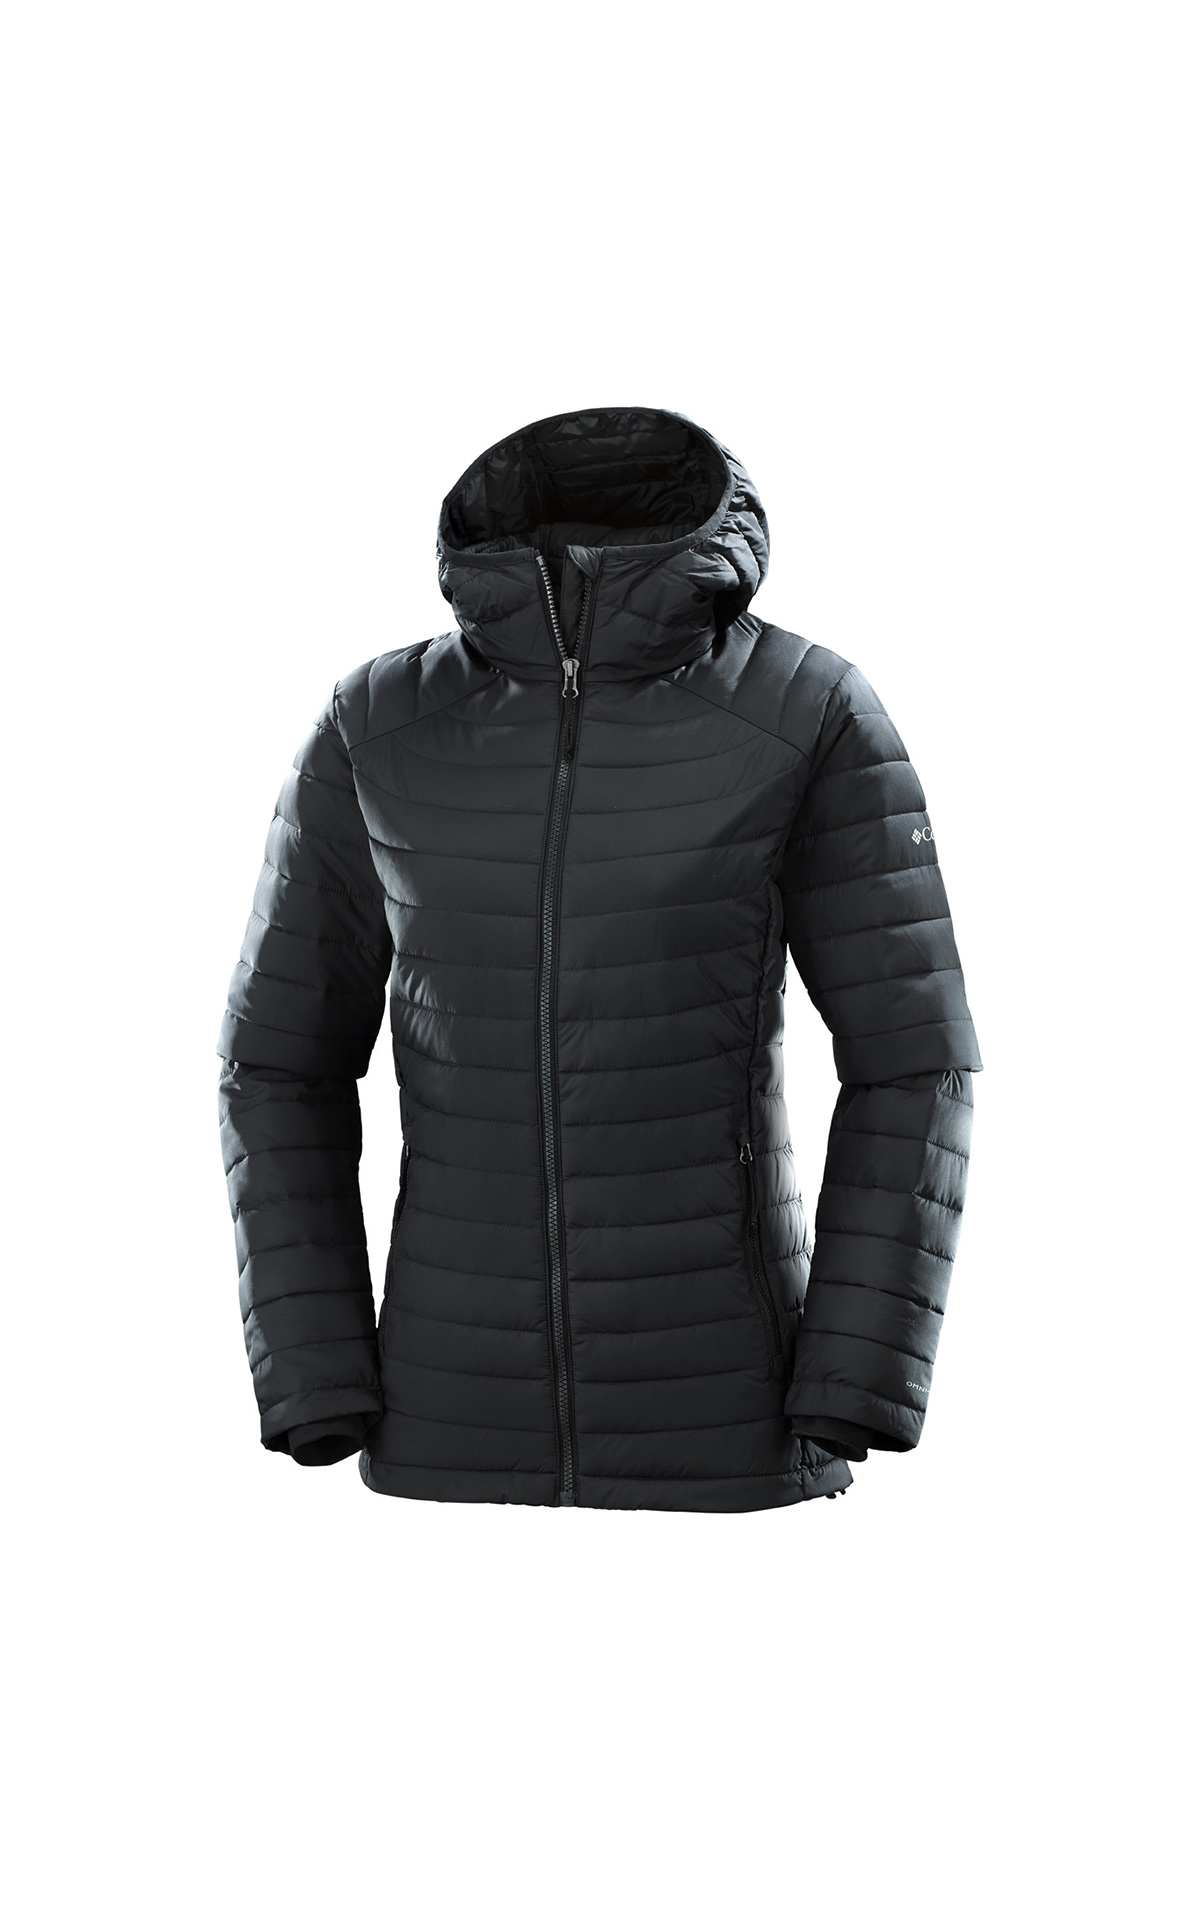 Black hooded jacket Columbia